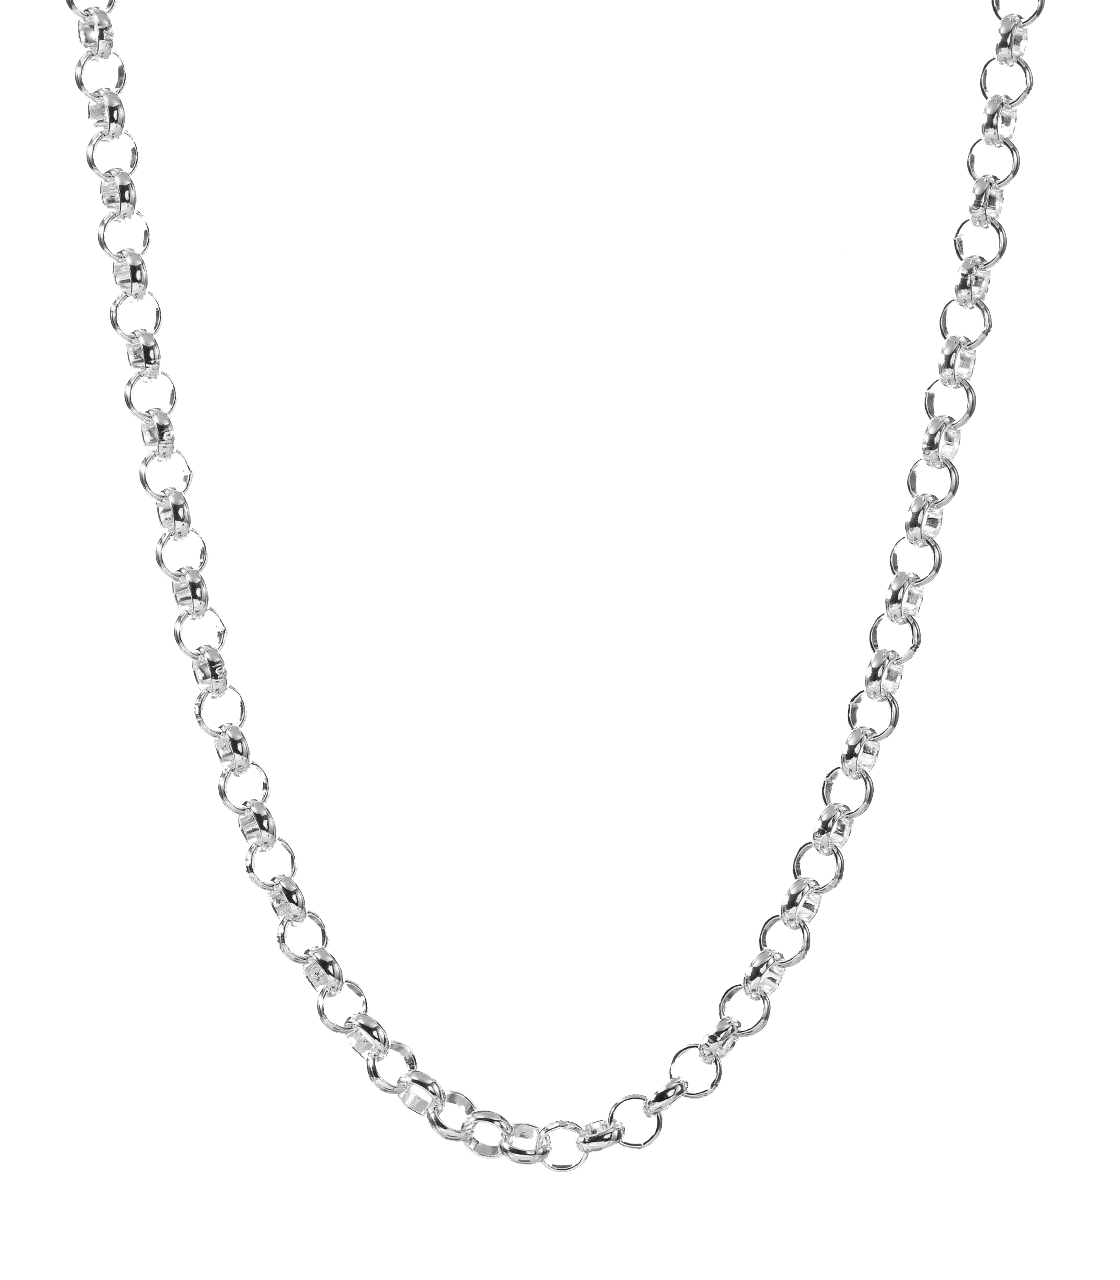 Free Chain Transparent Images Download Free Clip Art